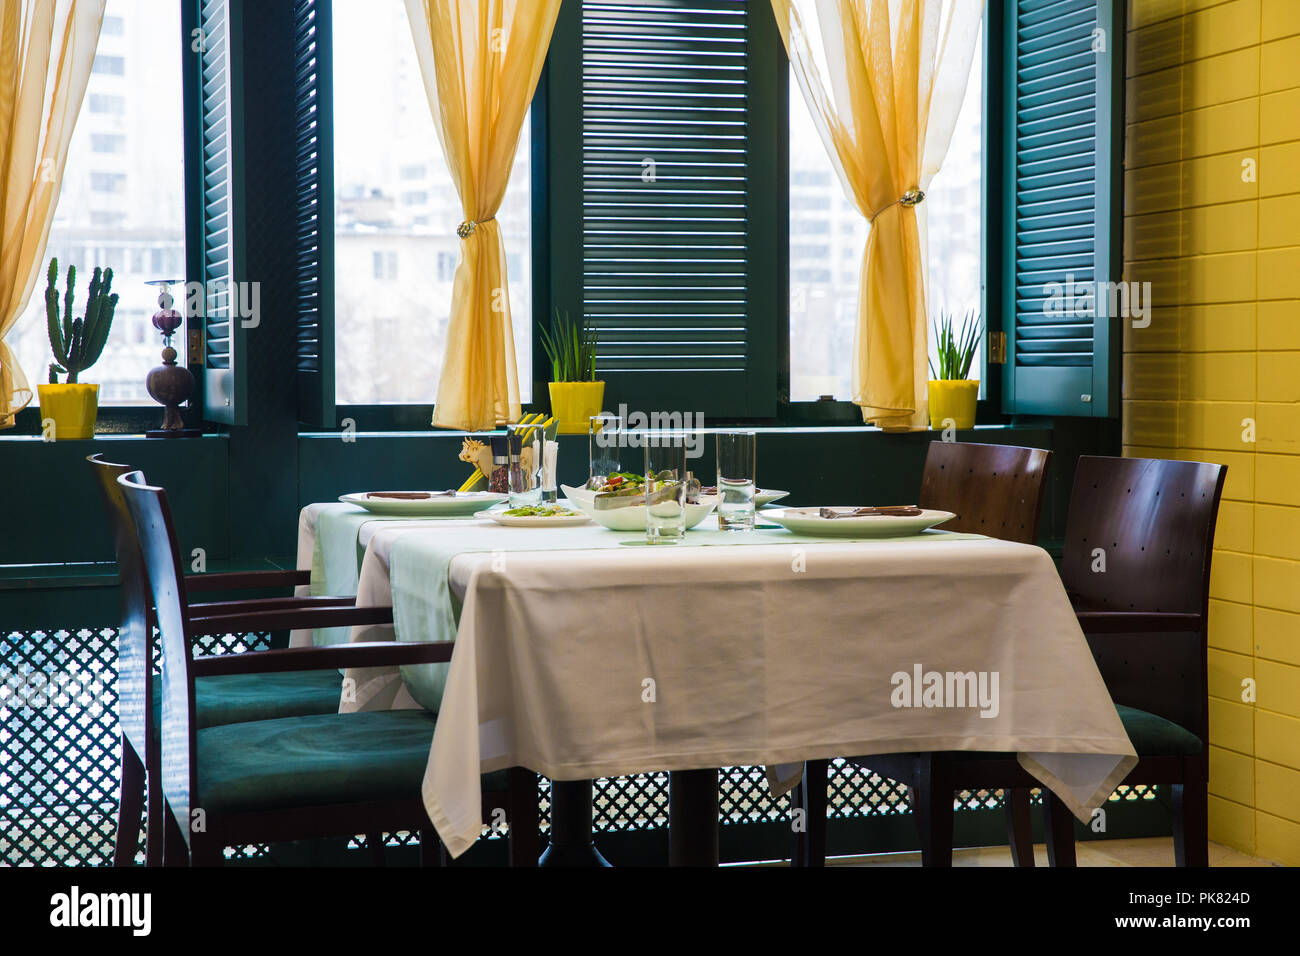 Cafe Table Setting Yellow And Green Color Table By The Window Wooden Window Blinds Stock Photo Alamy